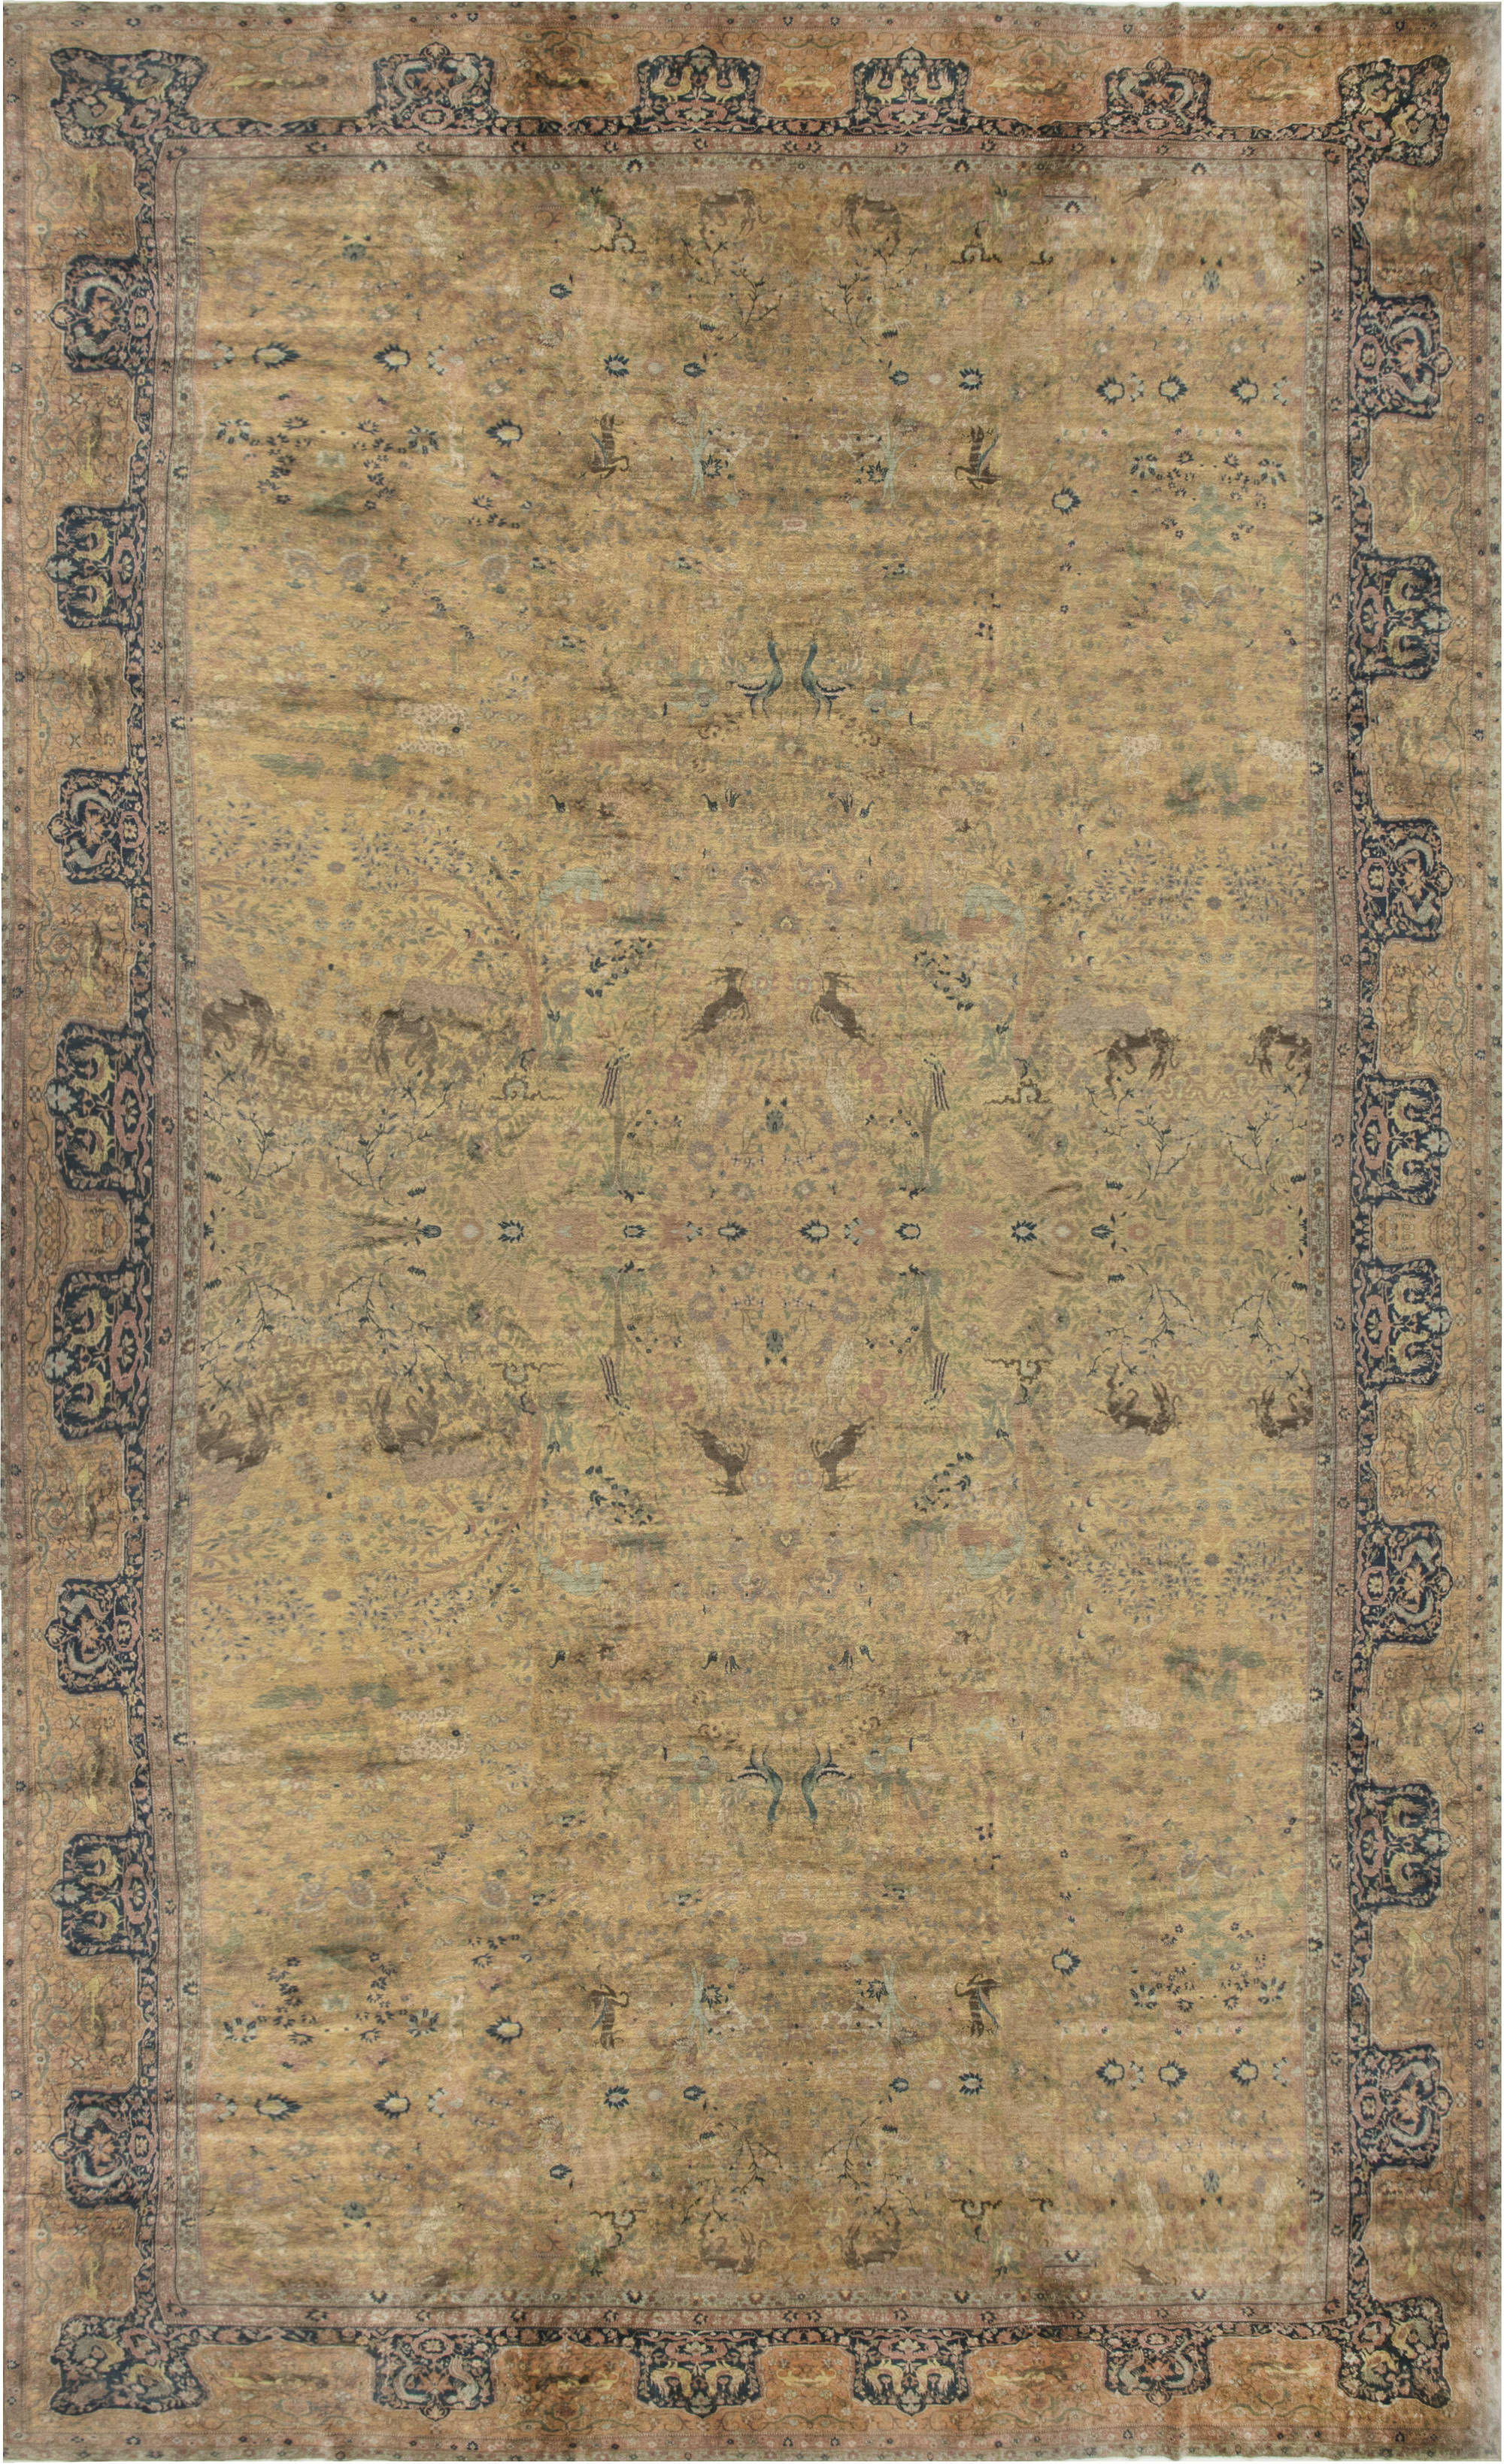 Oversized Antique Indian Rug BB6744